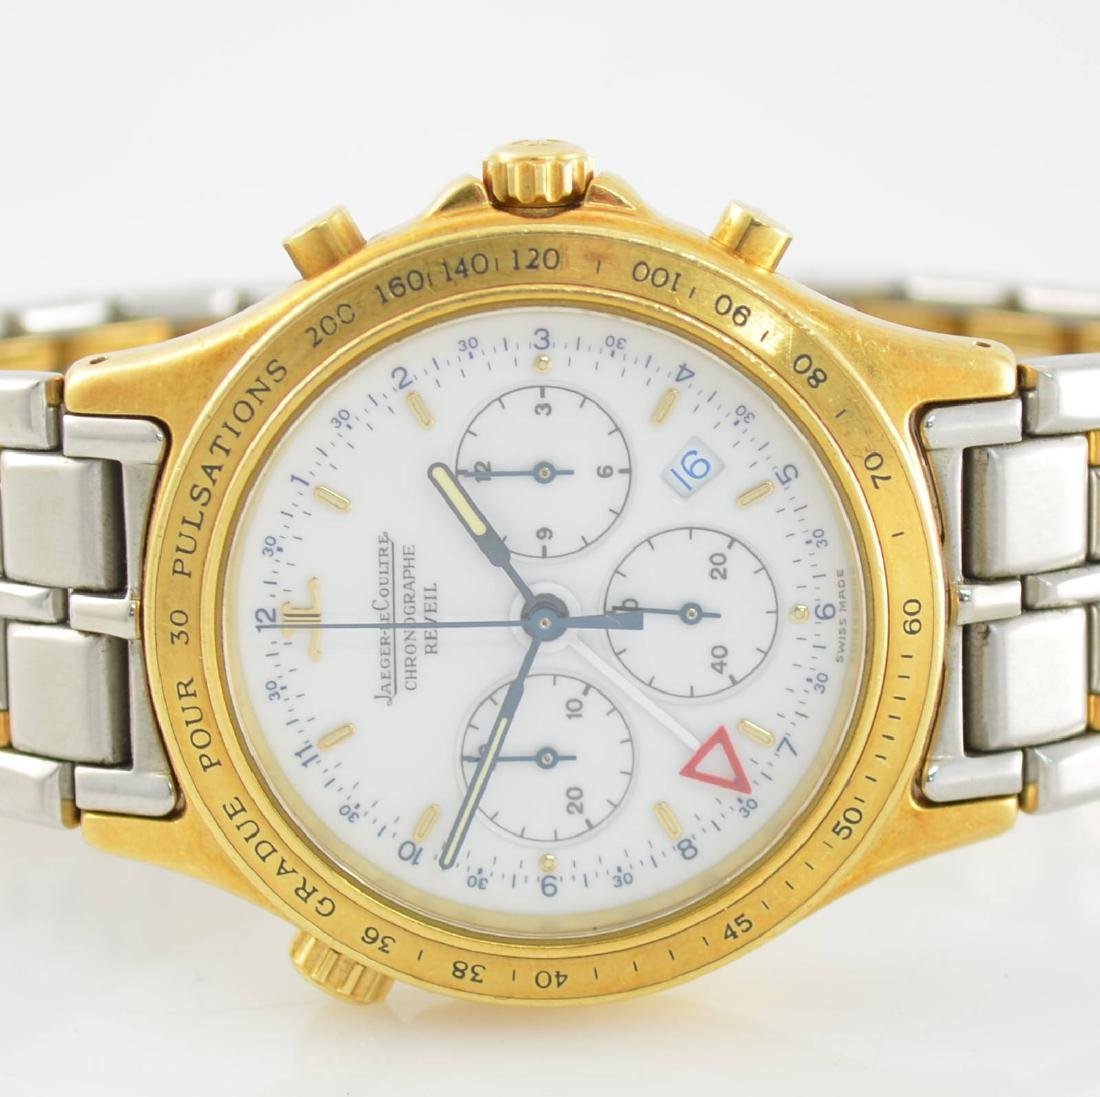 Jaeger-LeCoultre alarm wristwatch with chronograph - 2